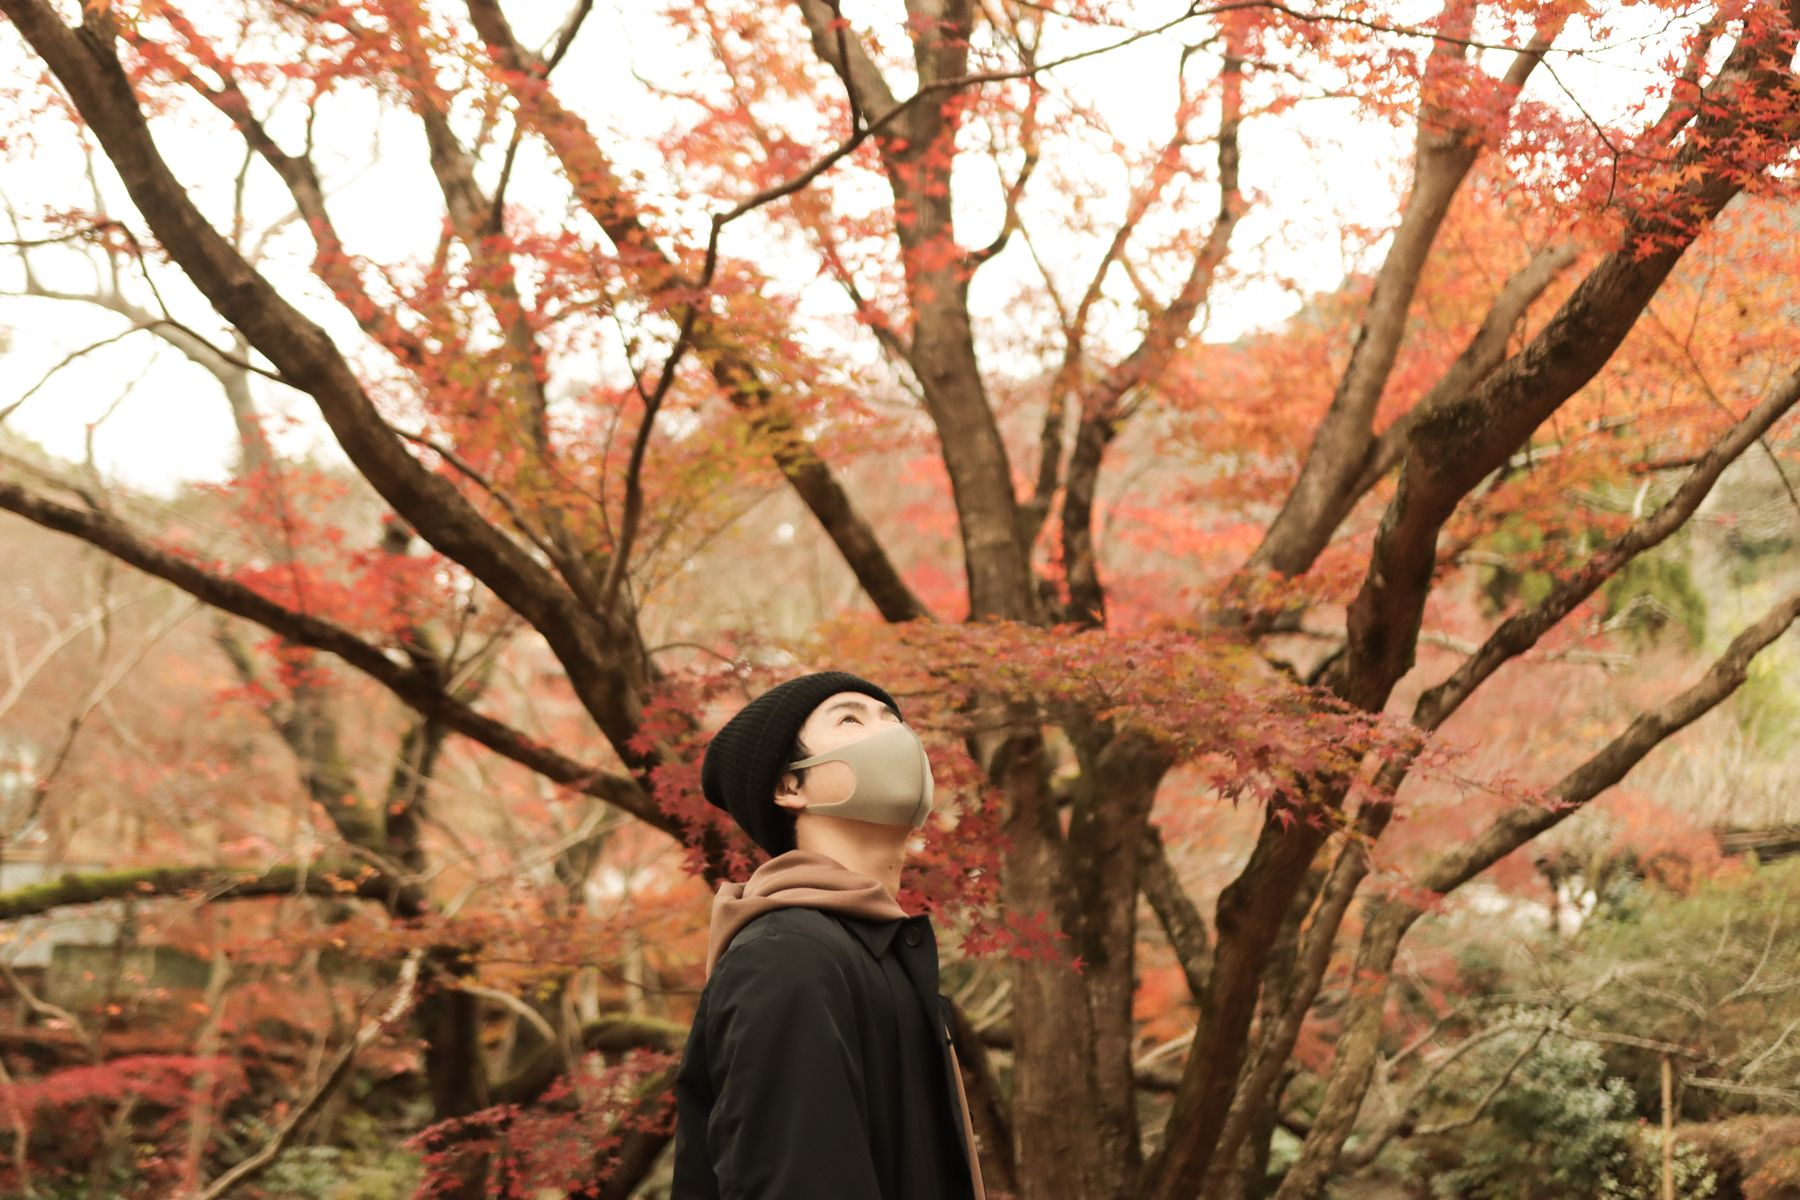 Solo traveler looking up at a colorful tree in Japan, one of the best places to travel alone.